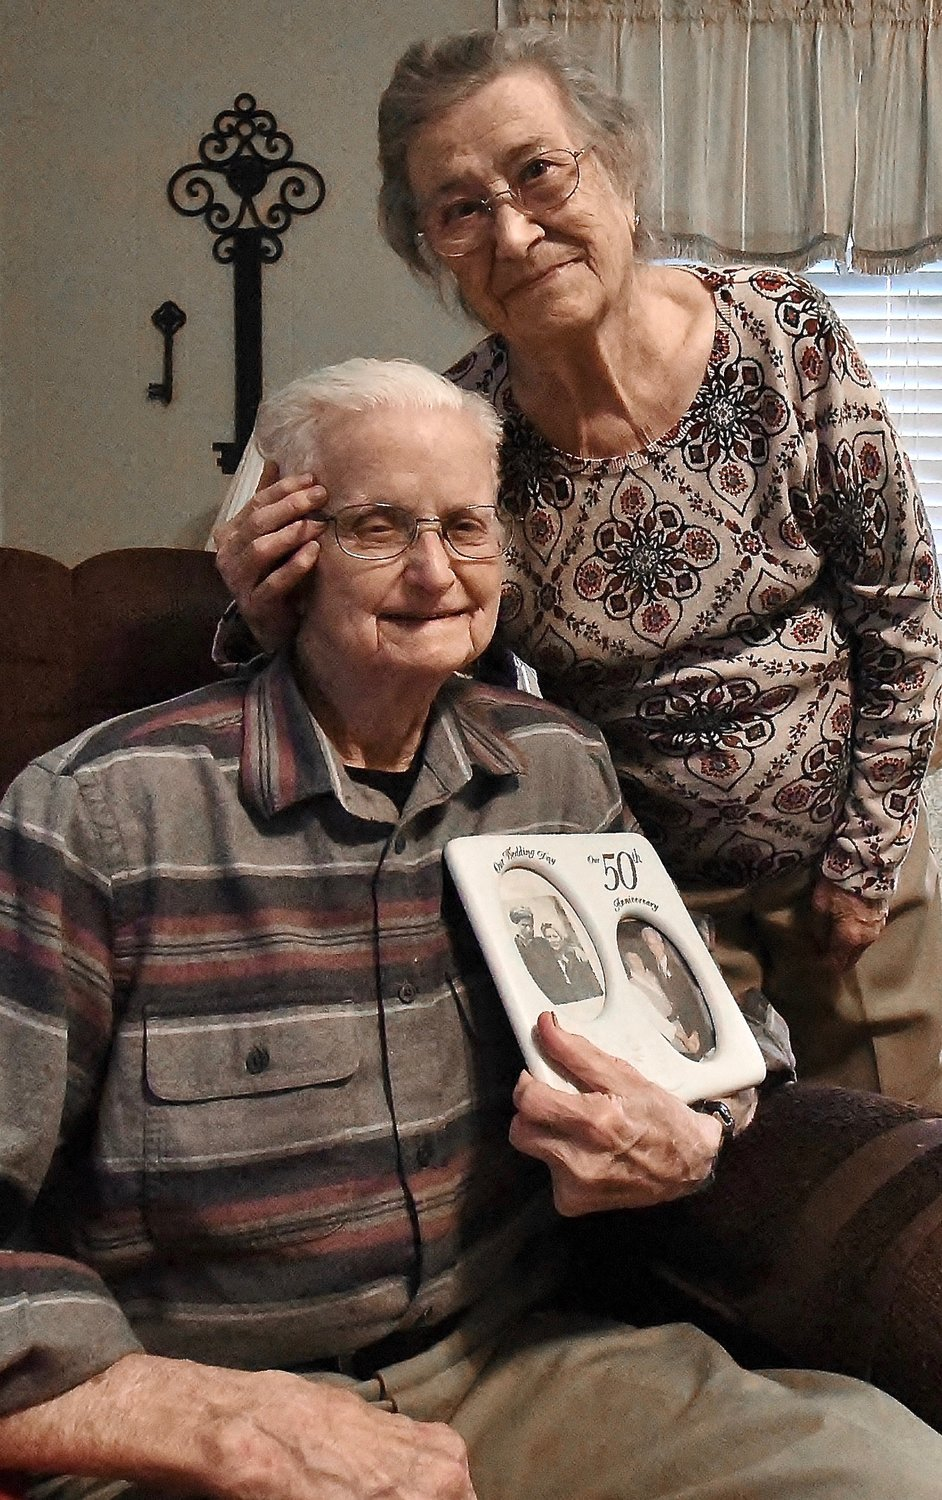 Omie Whitener embraces Jack, her husband of 74 years, as he holds a frame displaying a photograph of the couple in March 1945 and another image at their 50th wedding anniversary celebration.